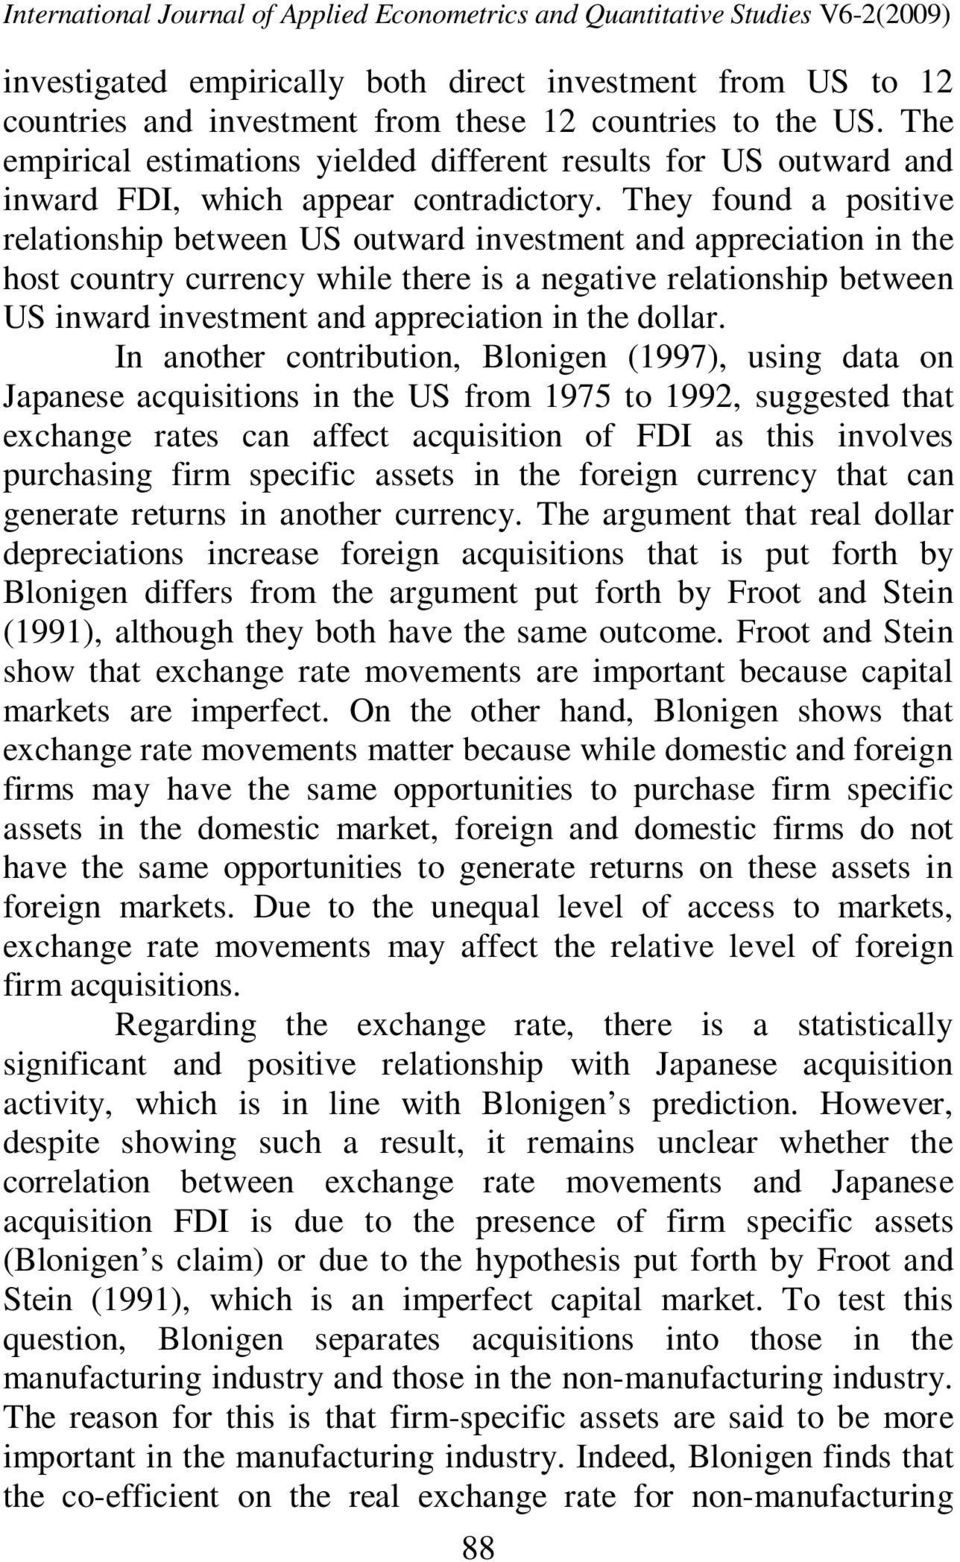 They found a positive relationship between US outward investment and appreciation in the host country currency while there is a negative relationship between US inward investment and appreciation in